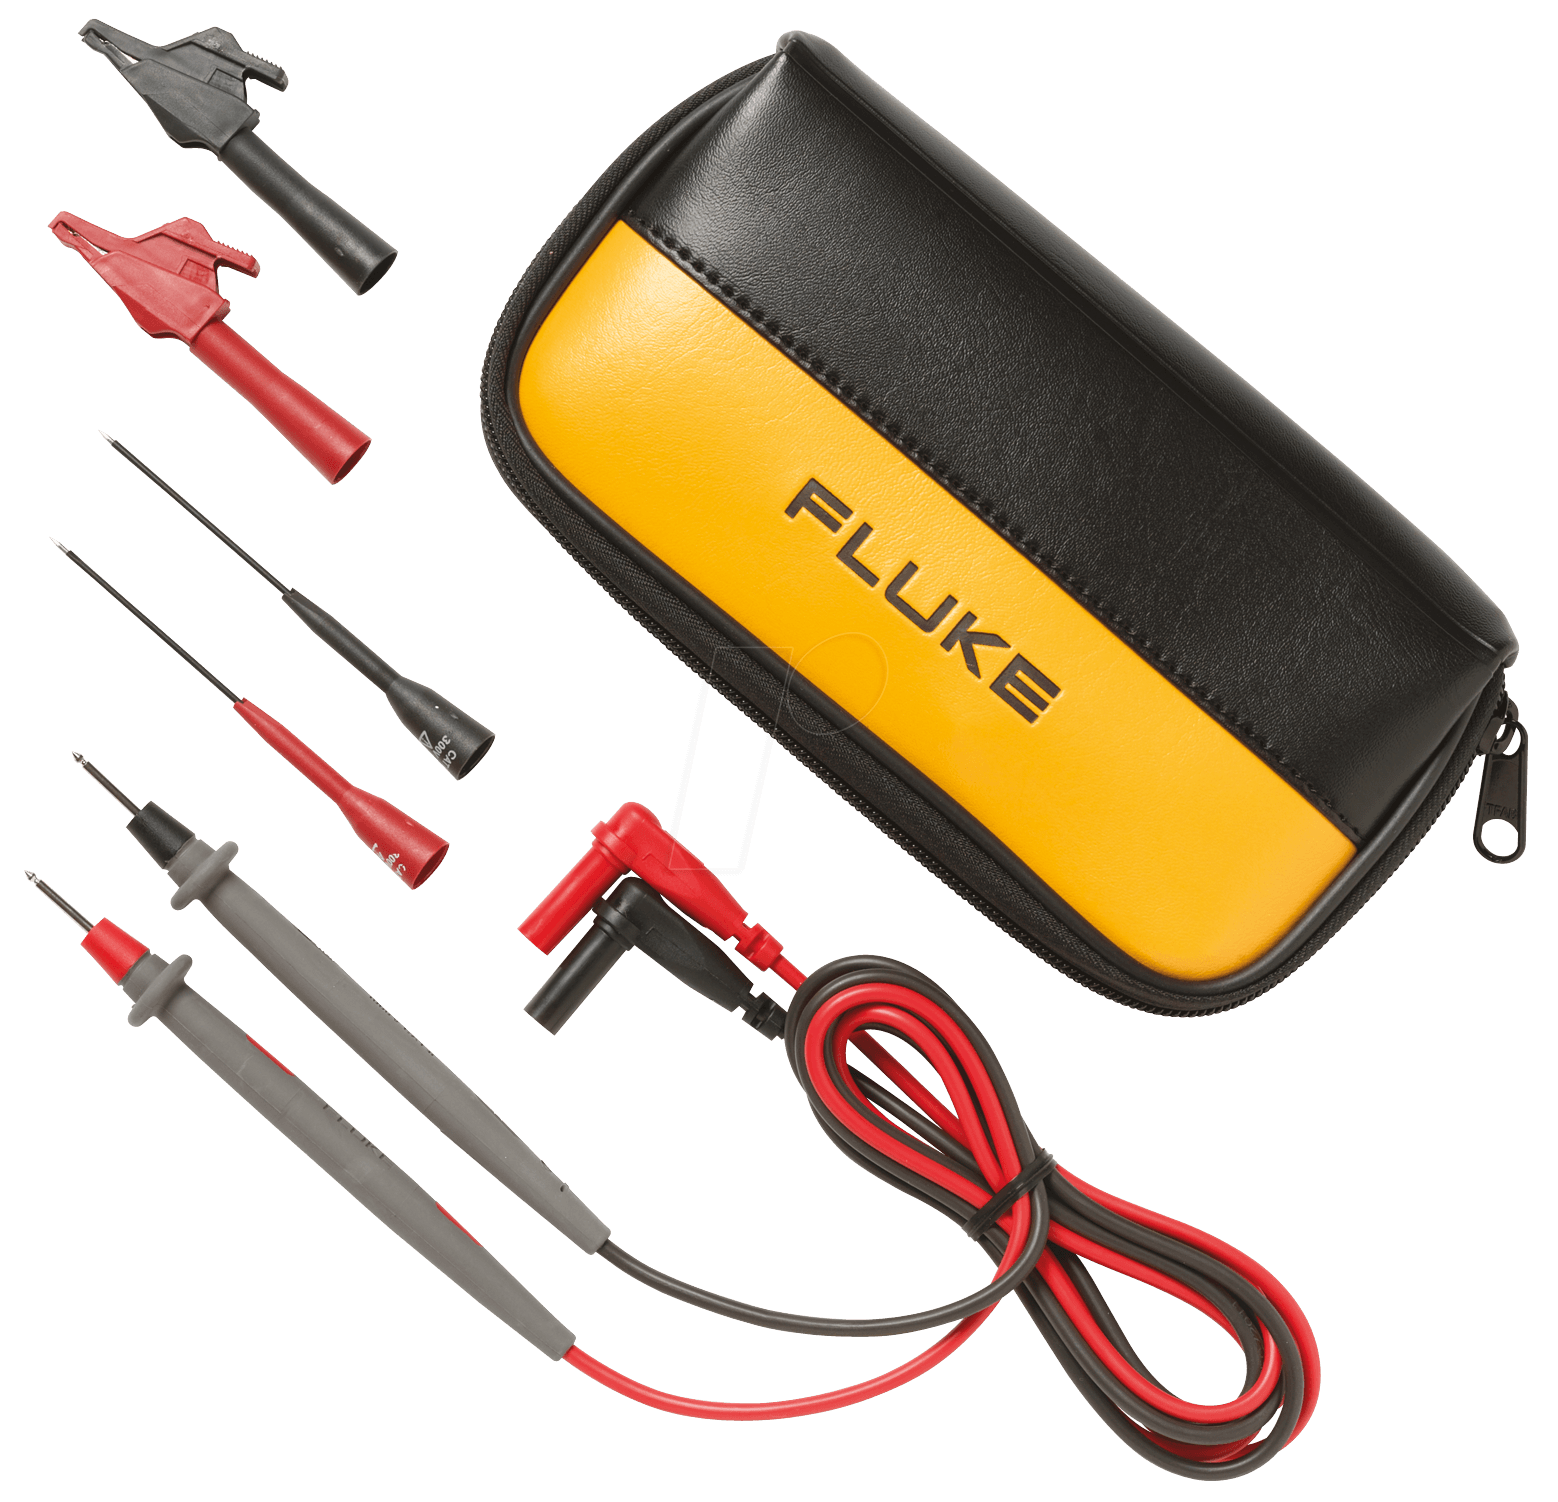 Test Leads Fluke Test Lead Kit Fluke